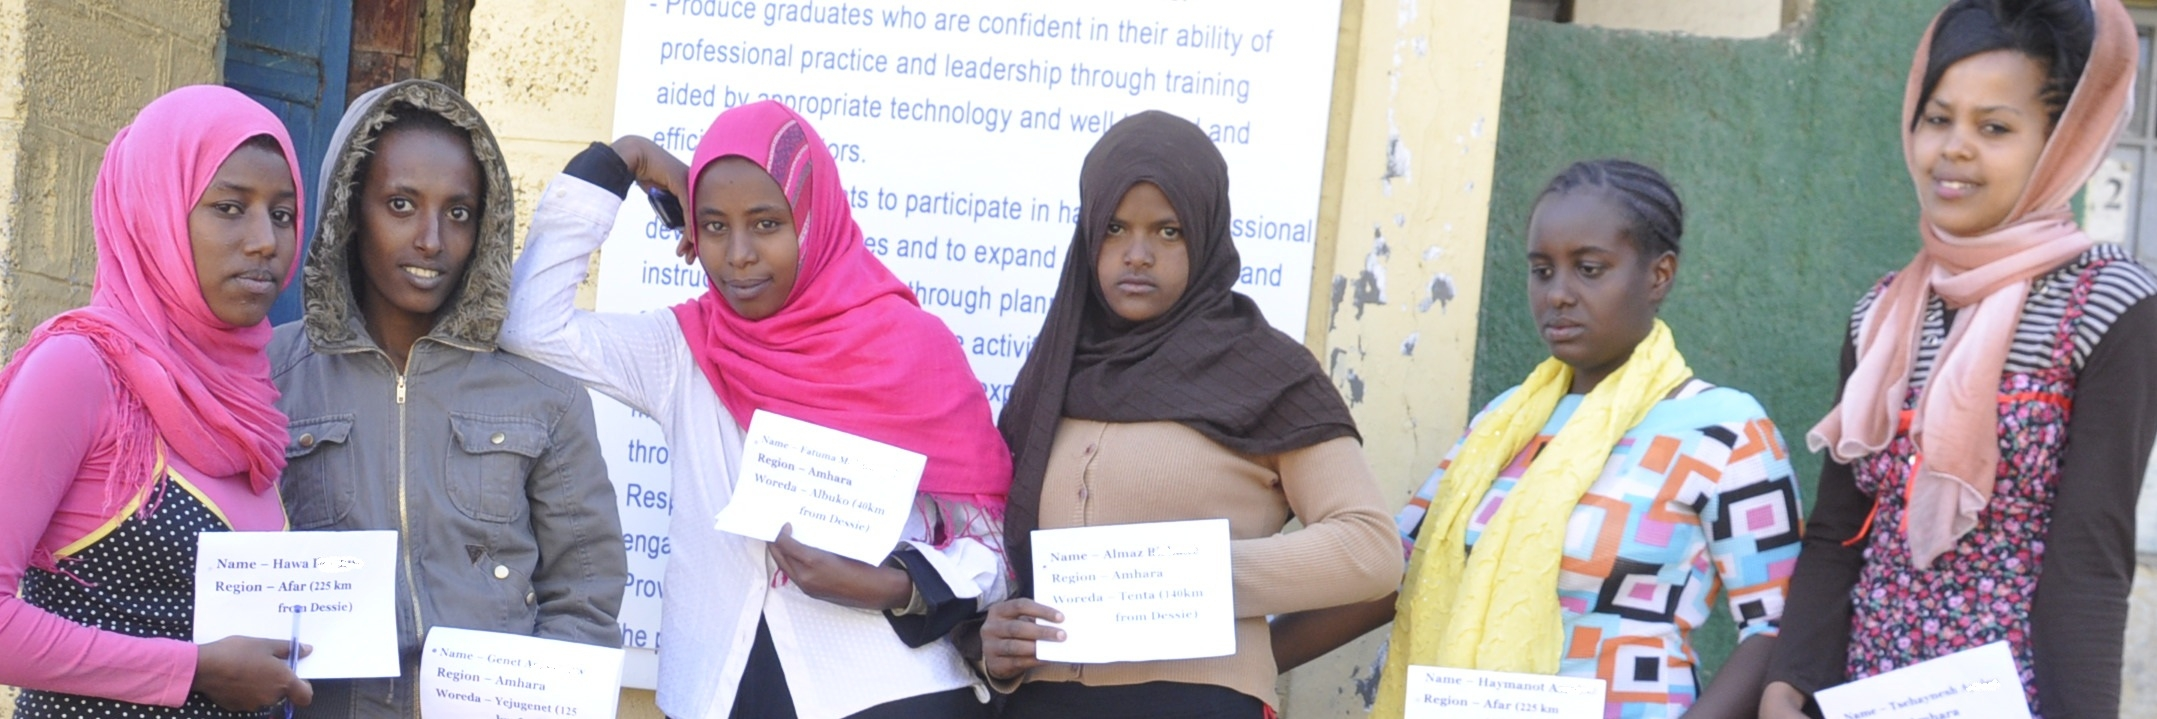 train new health workers in ethiopia save lives globalgiving